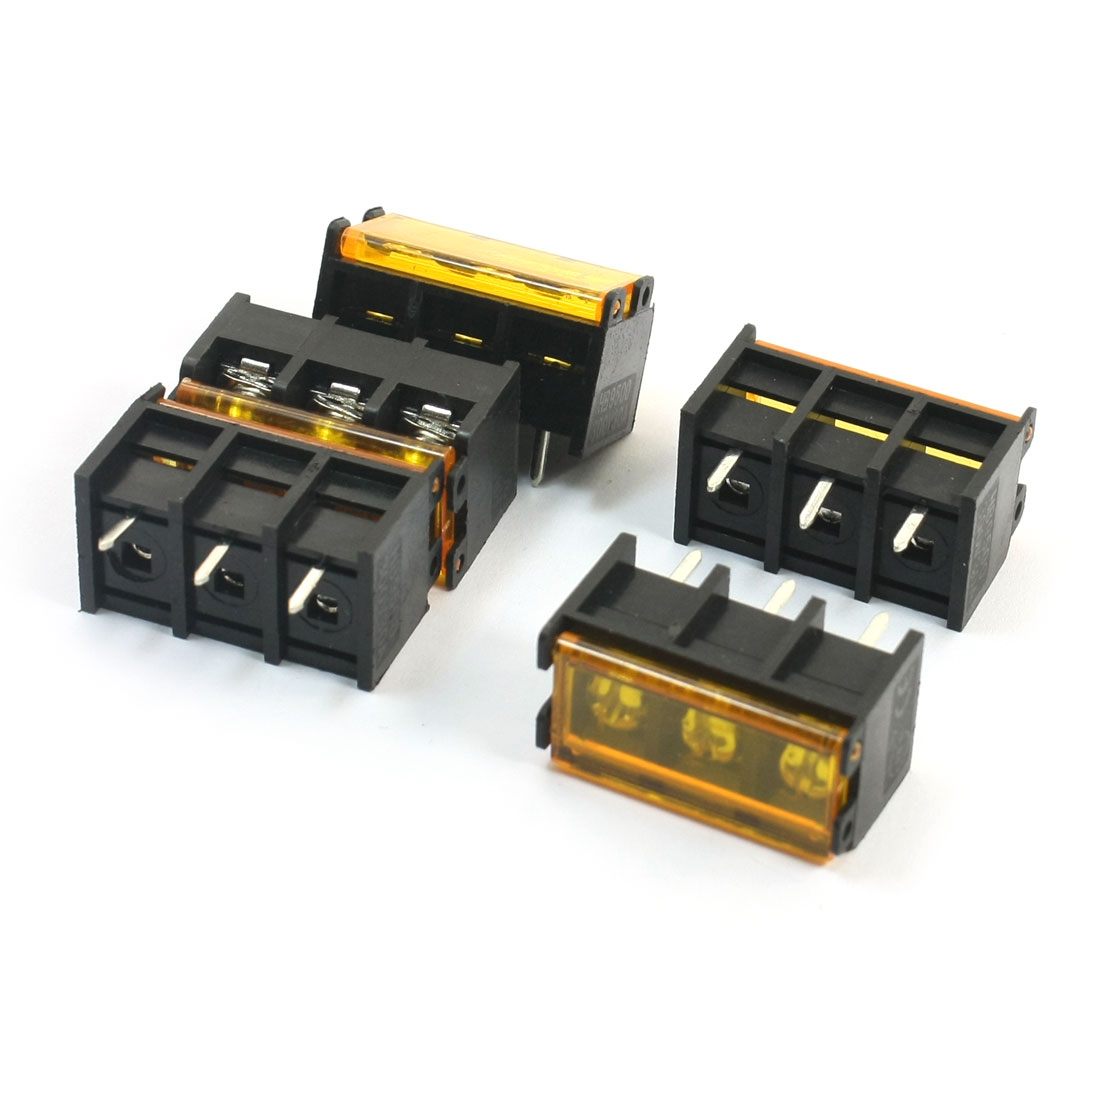 300V 30A 9.5mm Pitch 3-Position PCB Mounting Pluggable Type Screw Terminal Barrier Block Connector 5 Pcs